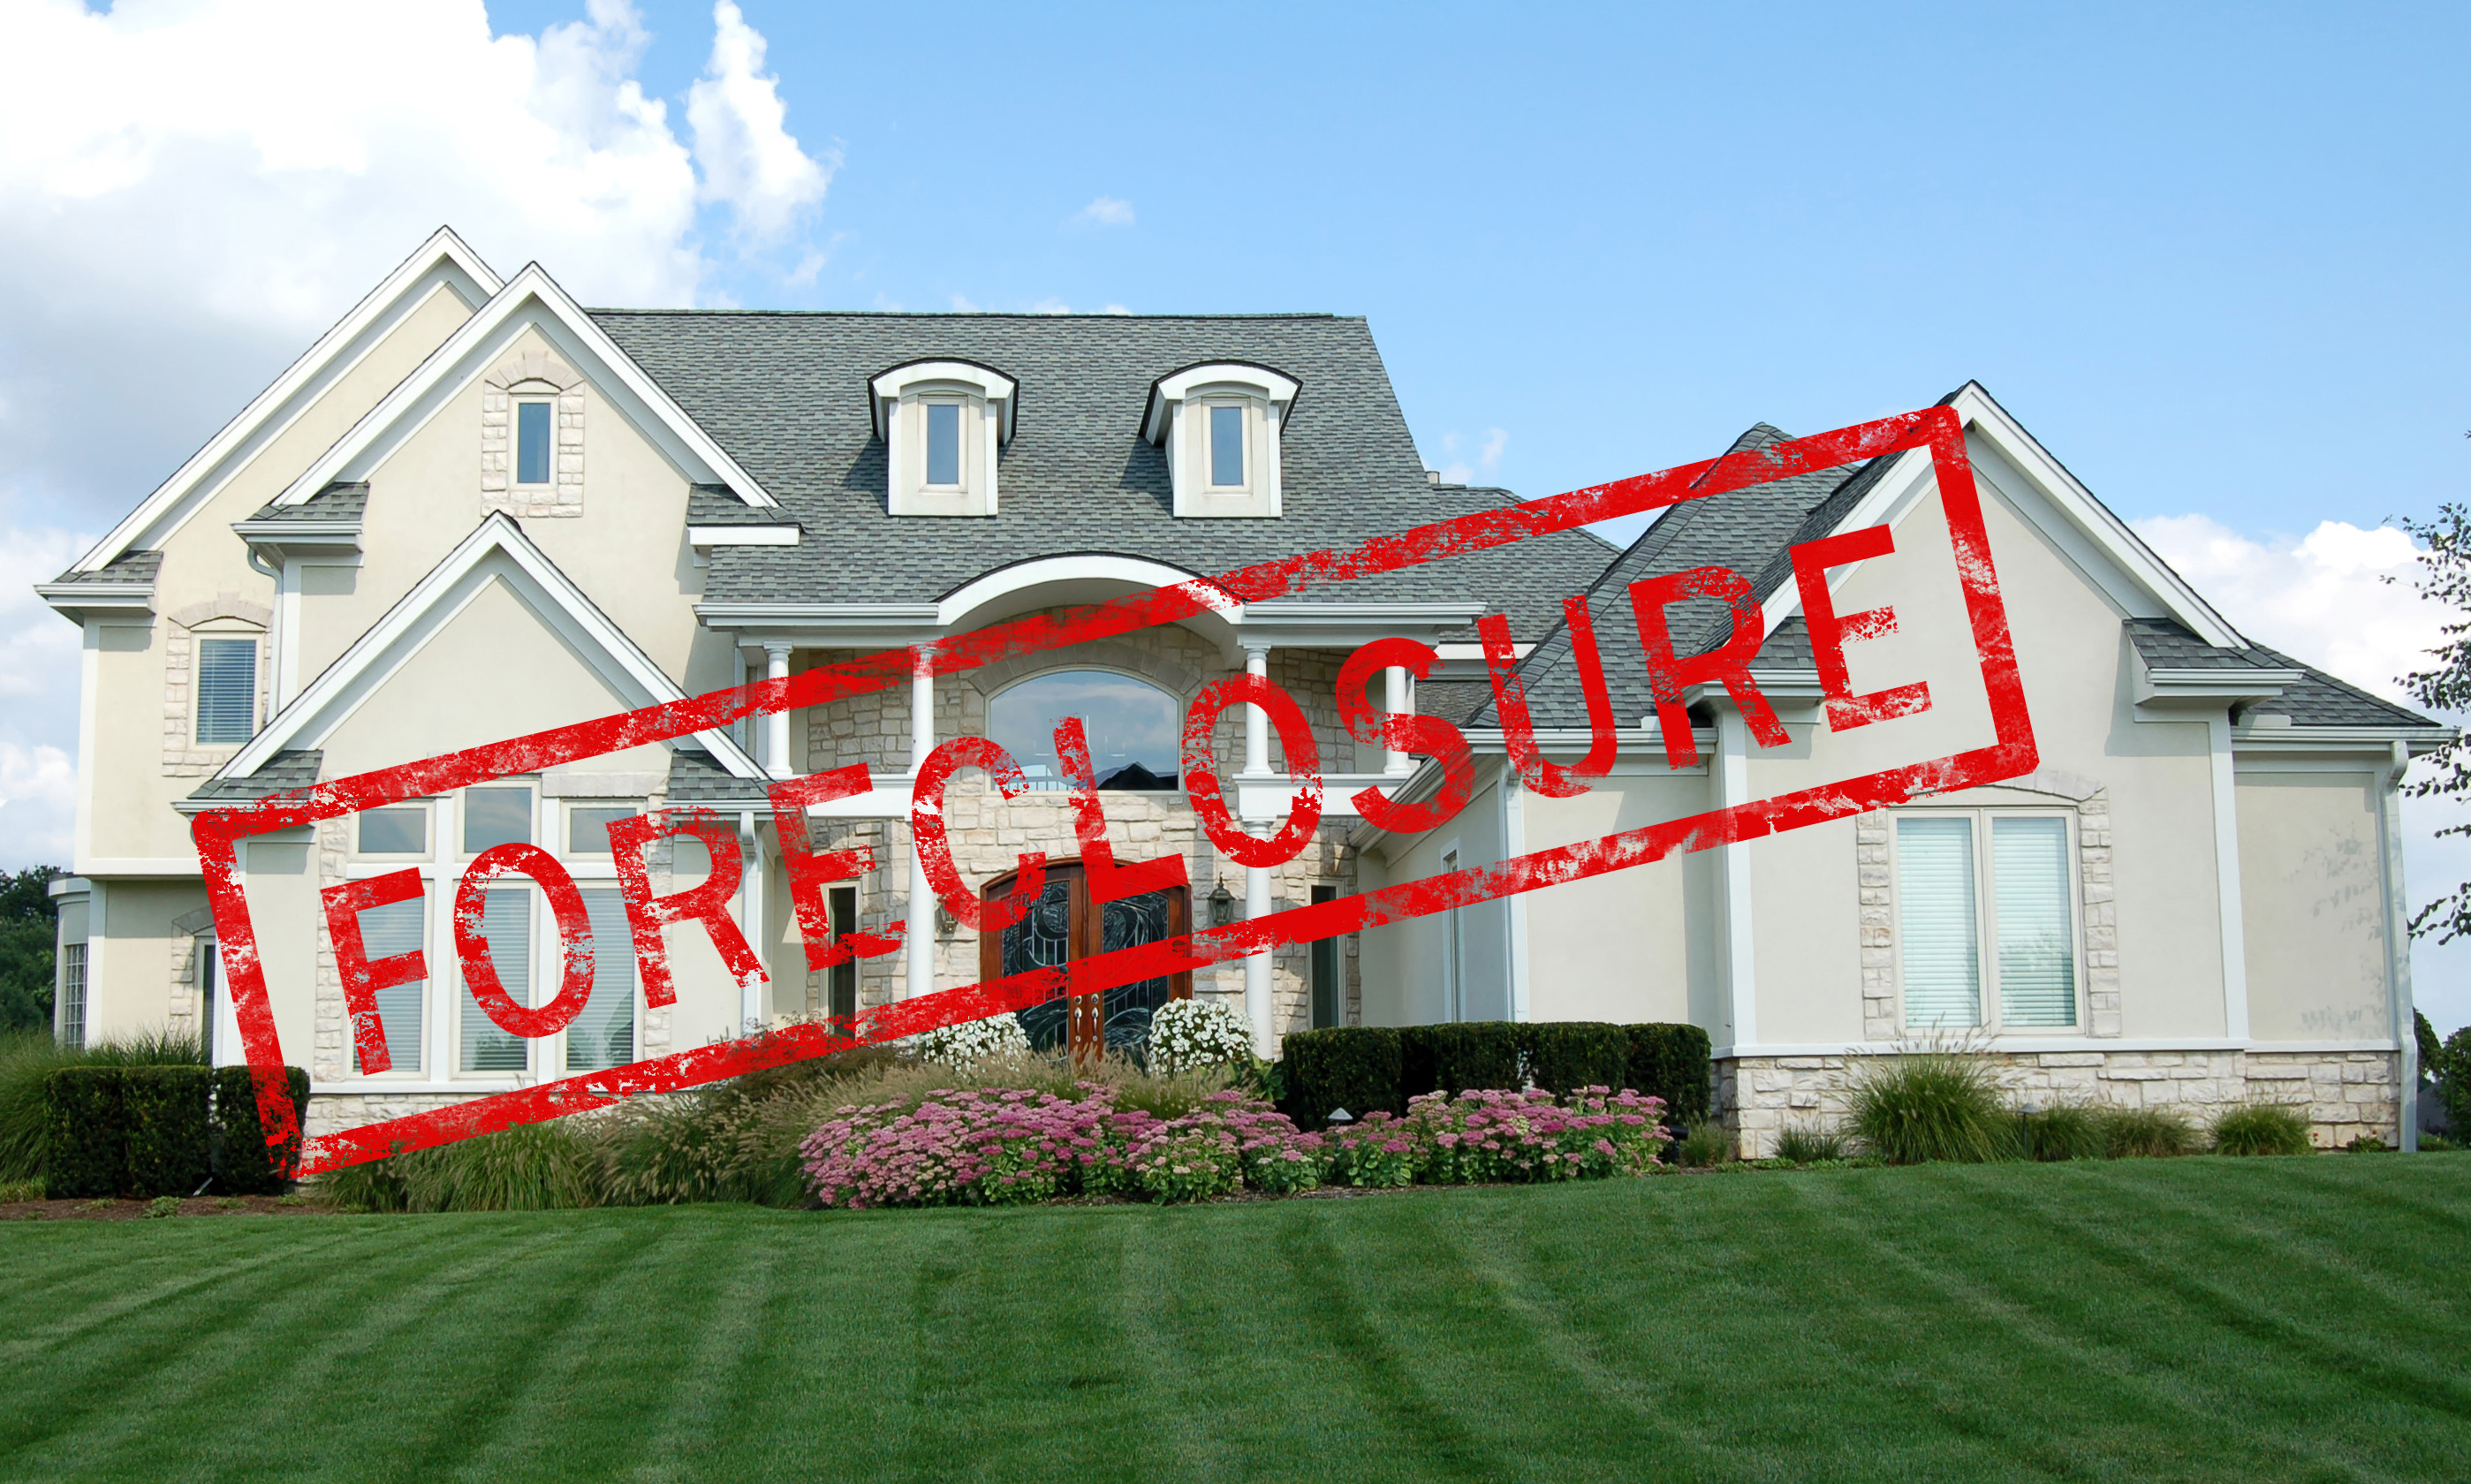 Call Deal Appraisal Services when you need valuations for Armstrong foreclosures